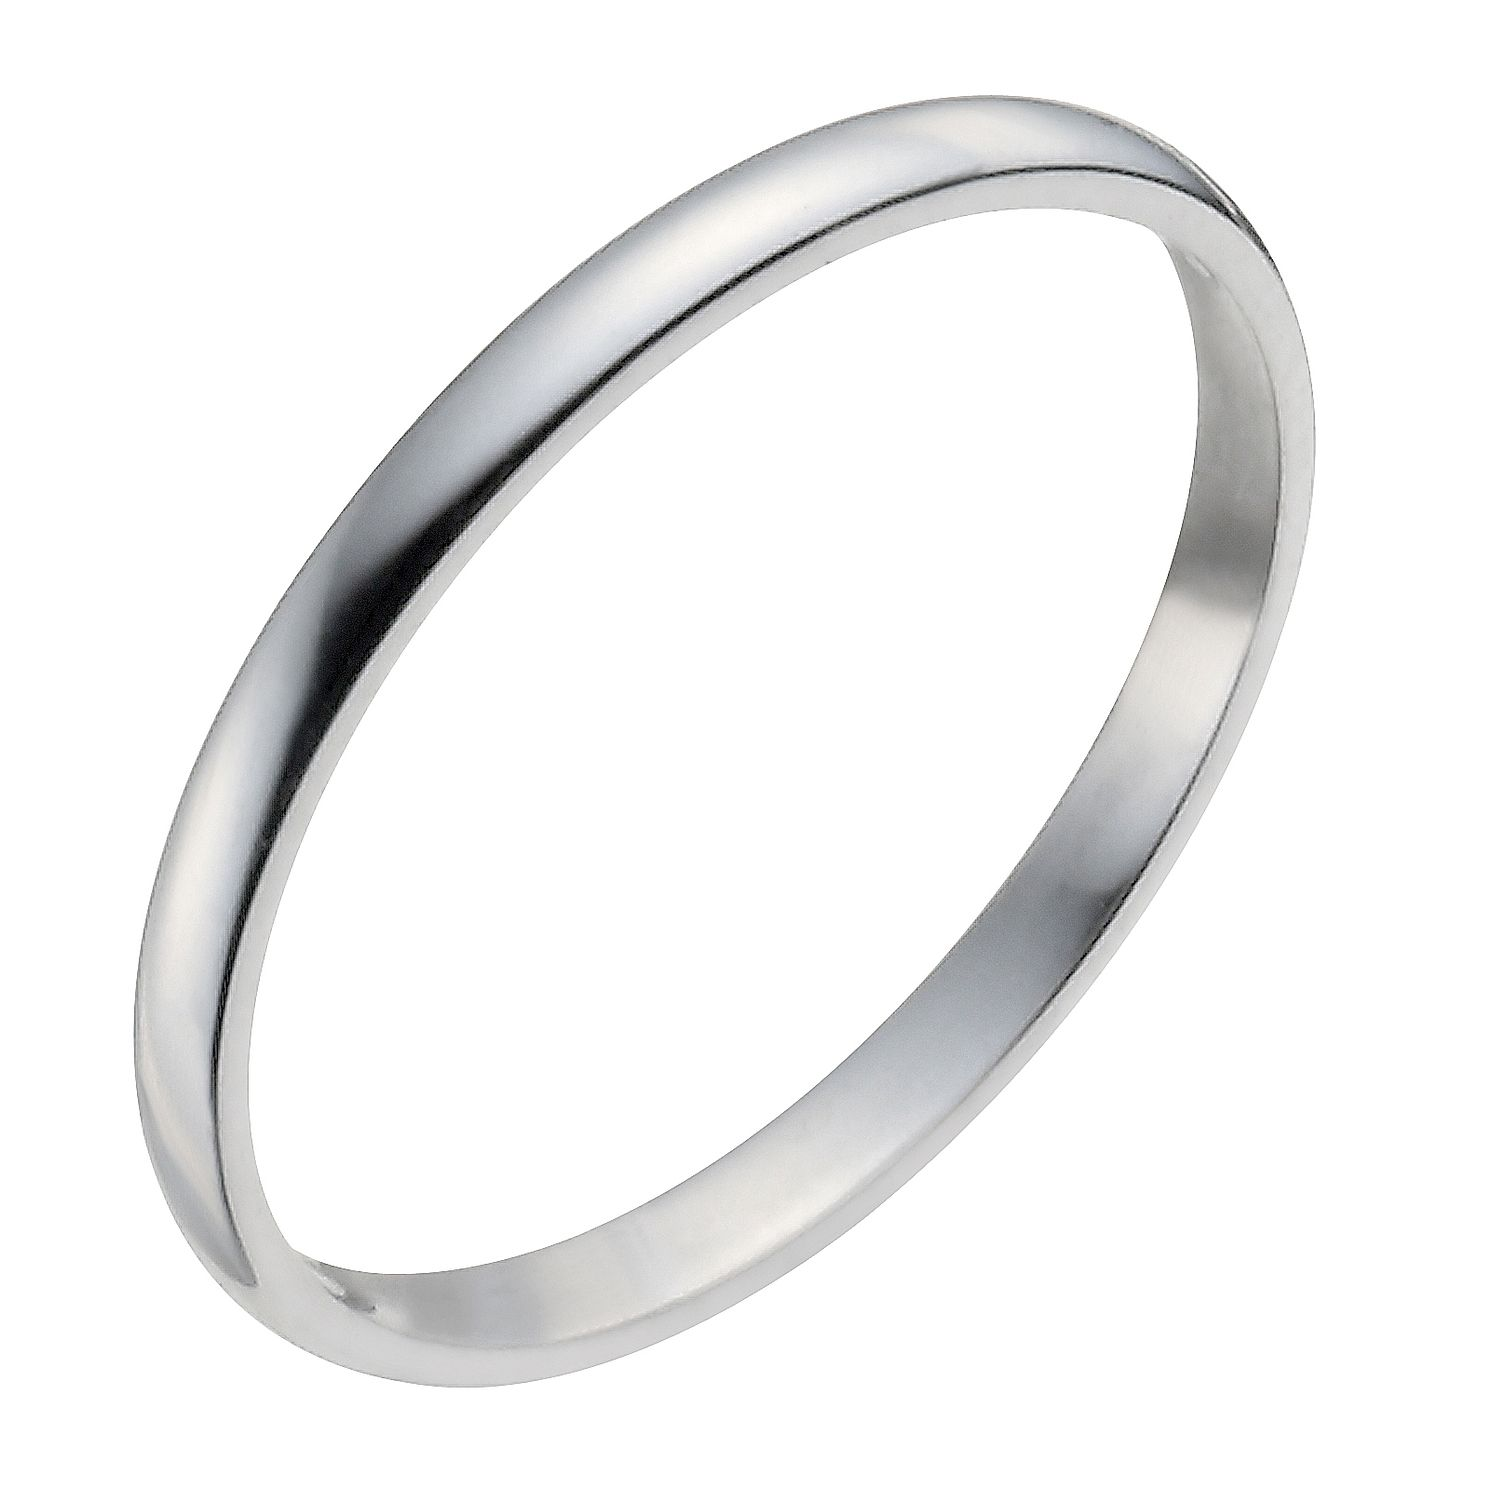 Palladium 950 2mm Heavy D Shape Ring - Product number 2811898